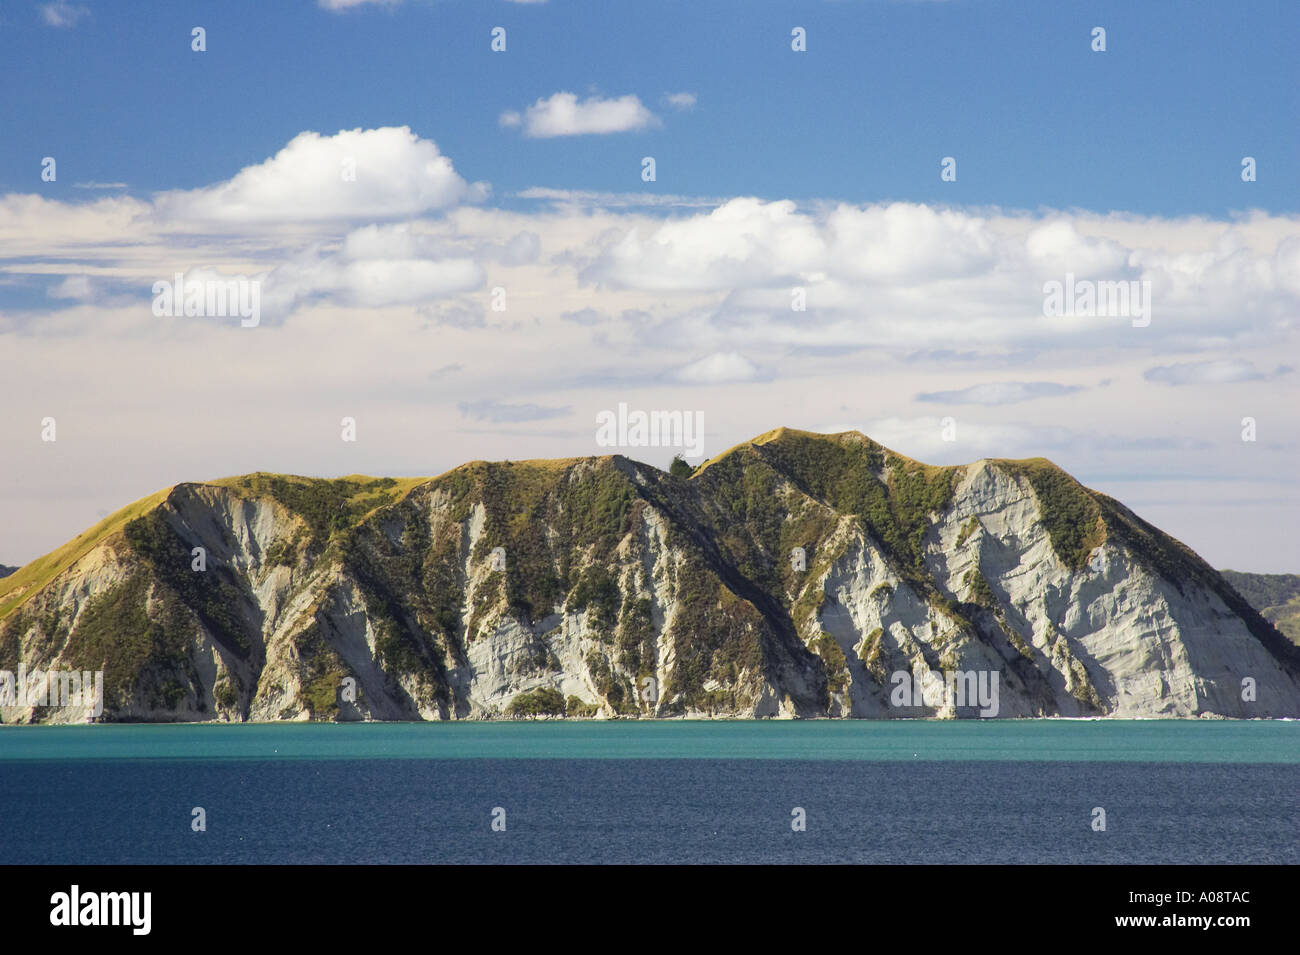 Te Karaka Point Tolaga Bay Eastland New Zealand - Stock Image